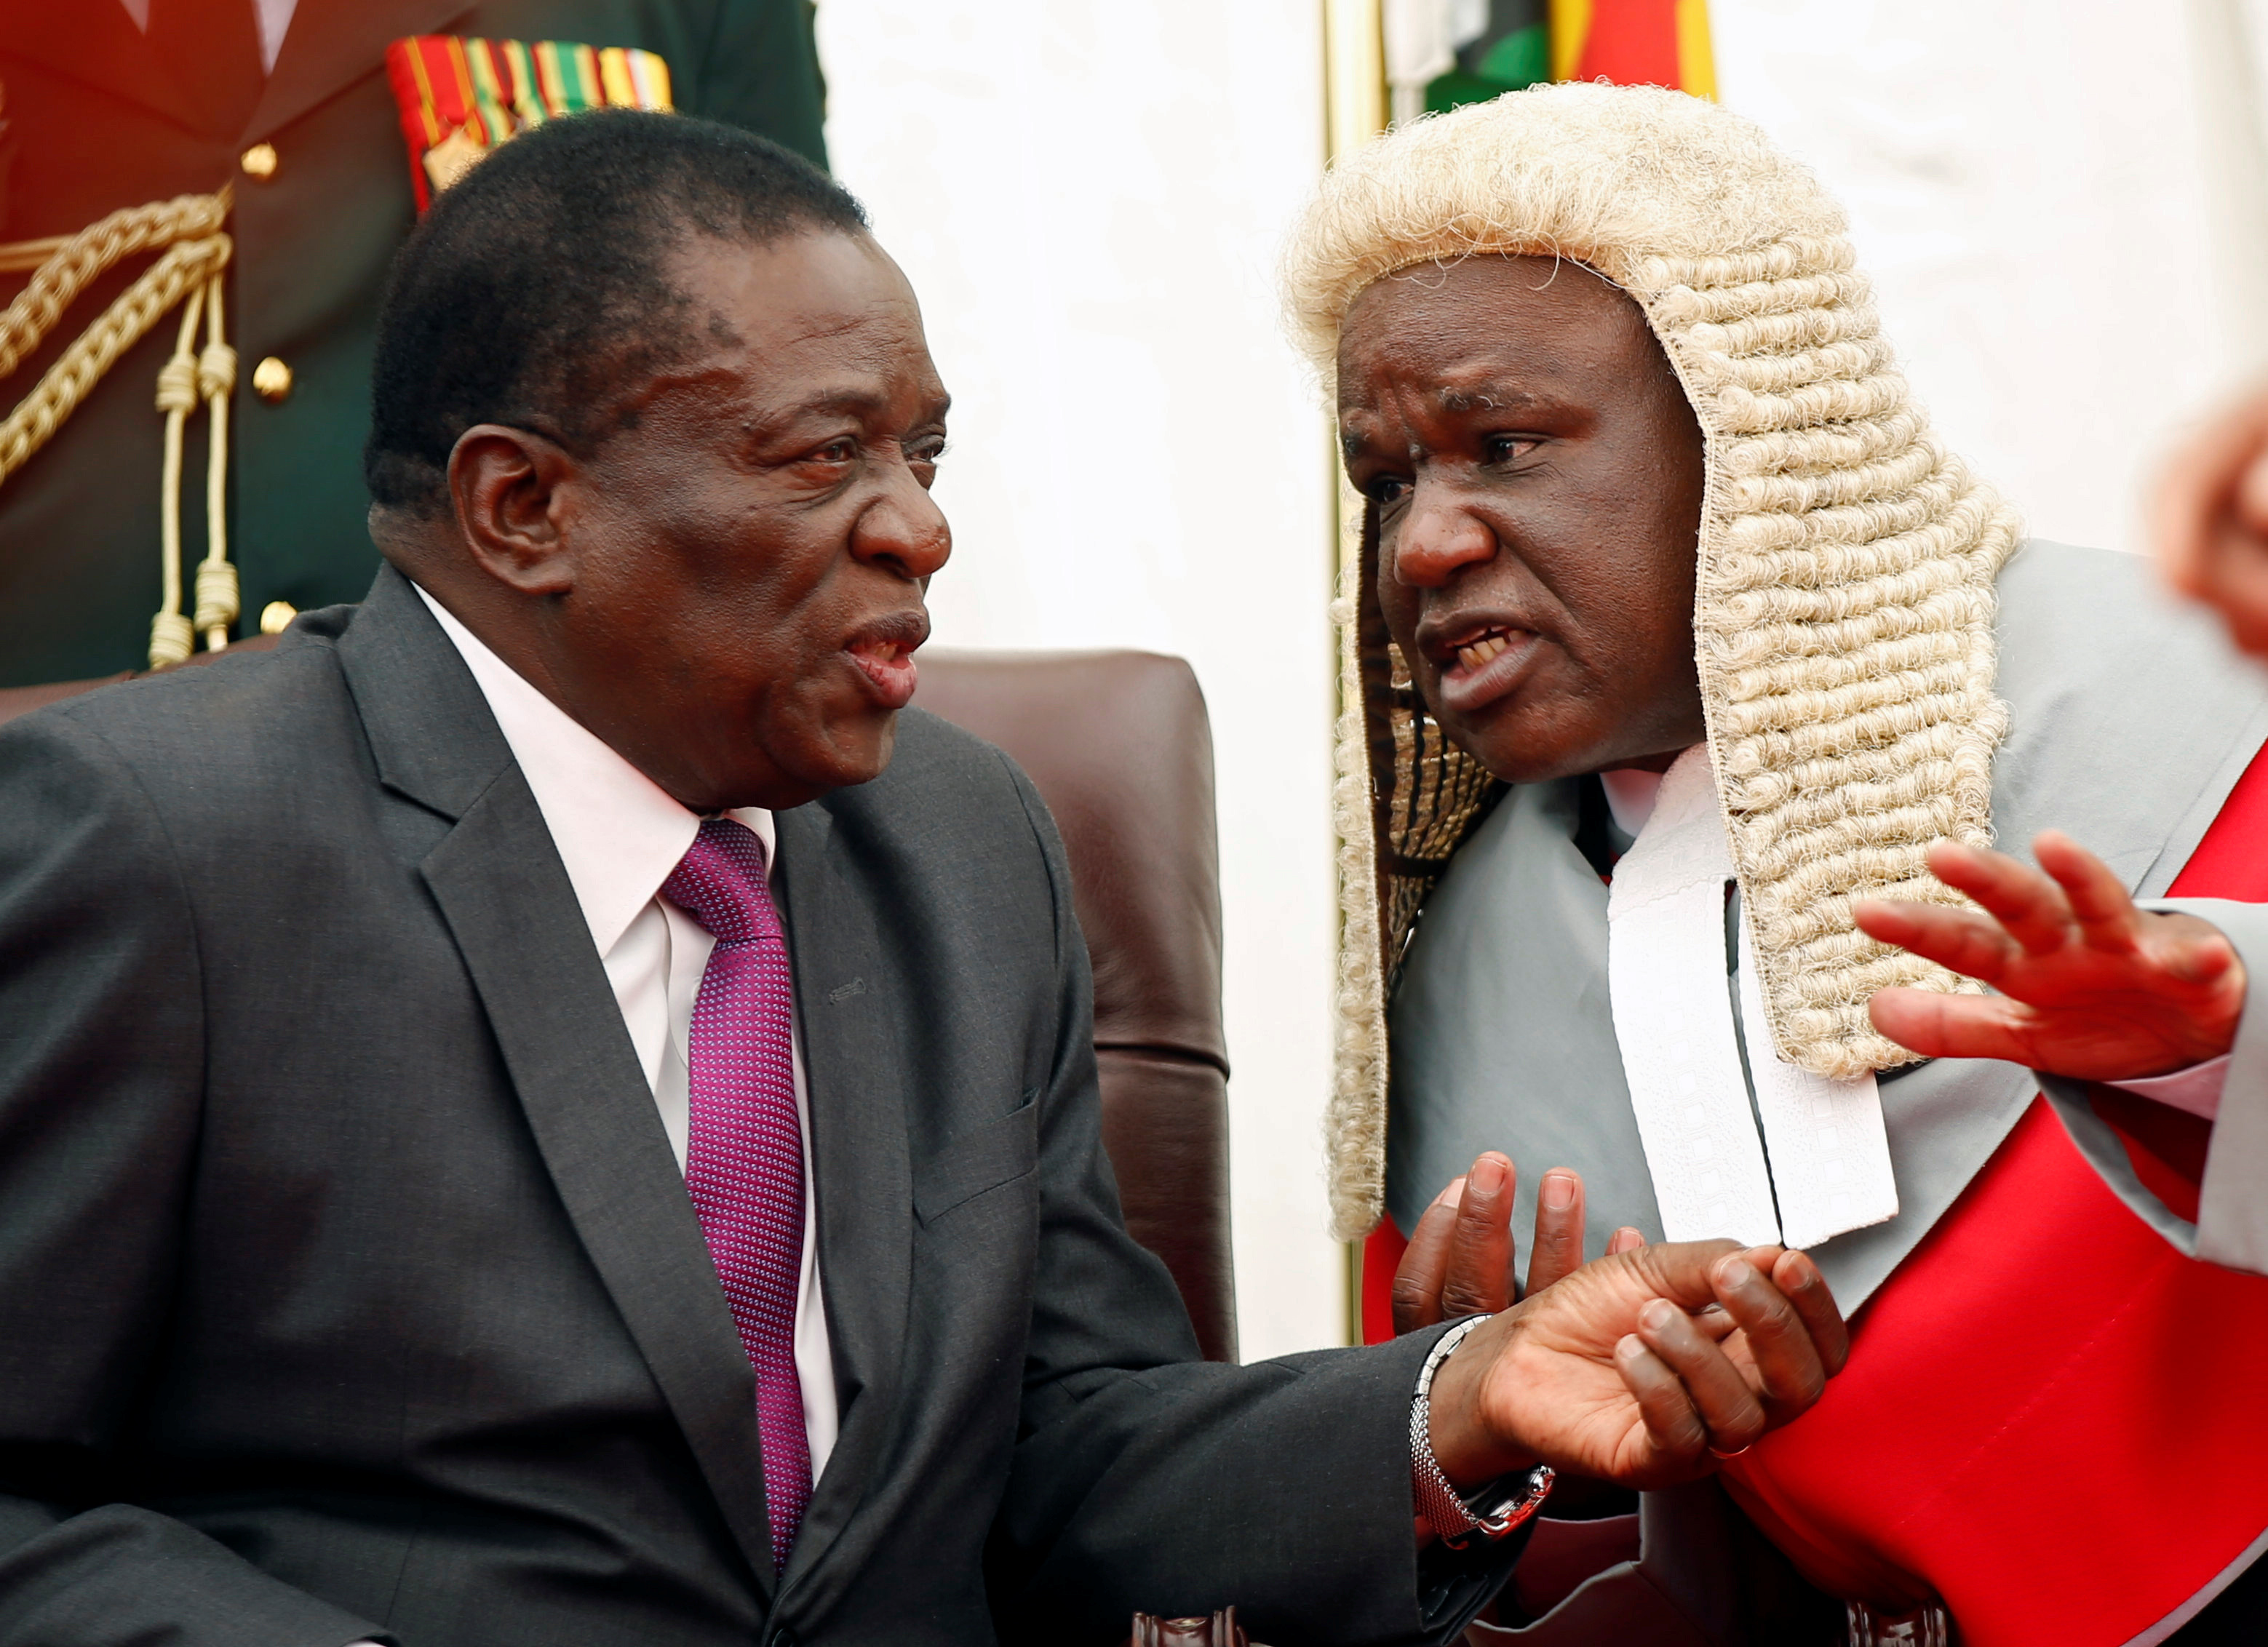 Zimbabwean President Emmerson Mnangagwa talks to the Chief Justice Luke Malaba during the swearing in ceremony of the country's vice presidents at State House in Harare, Zimbabwe, December 28,2017.REUTERS/Philimon Bulawayo